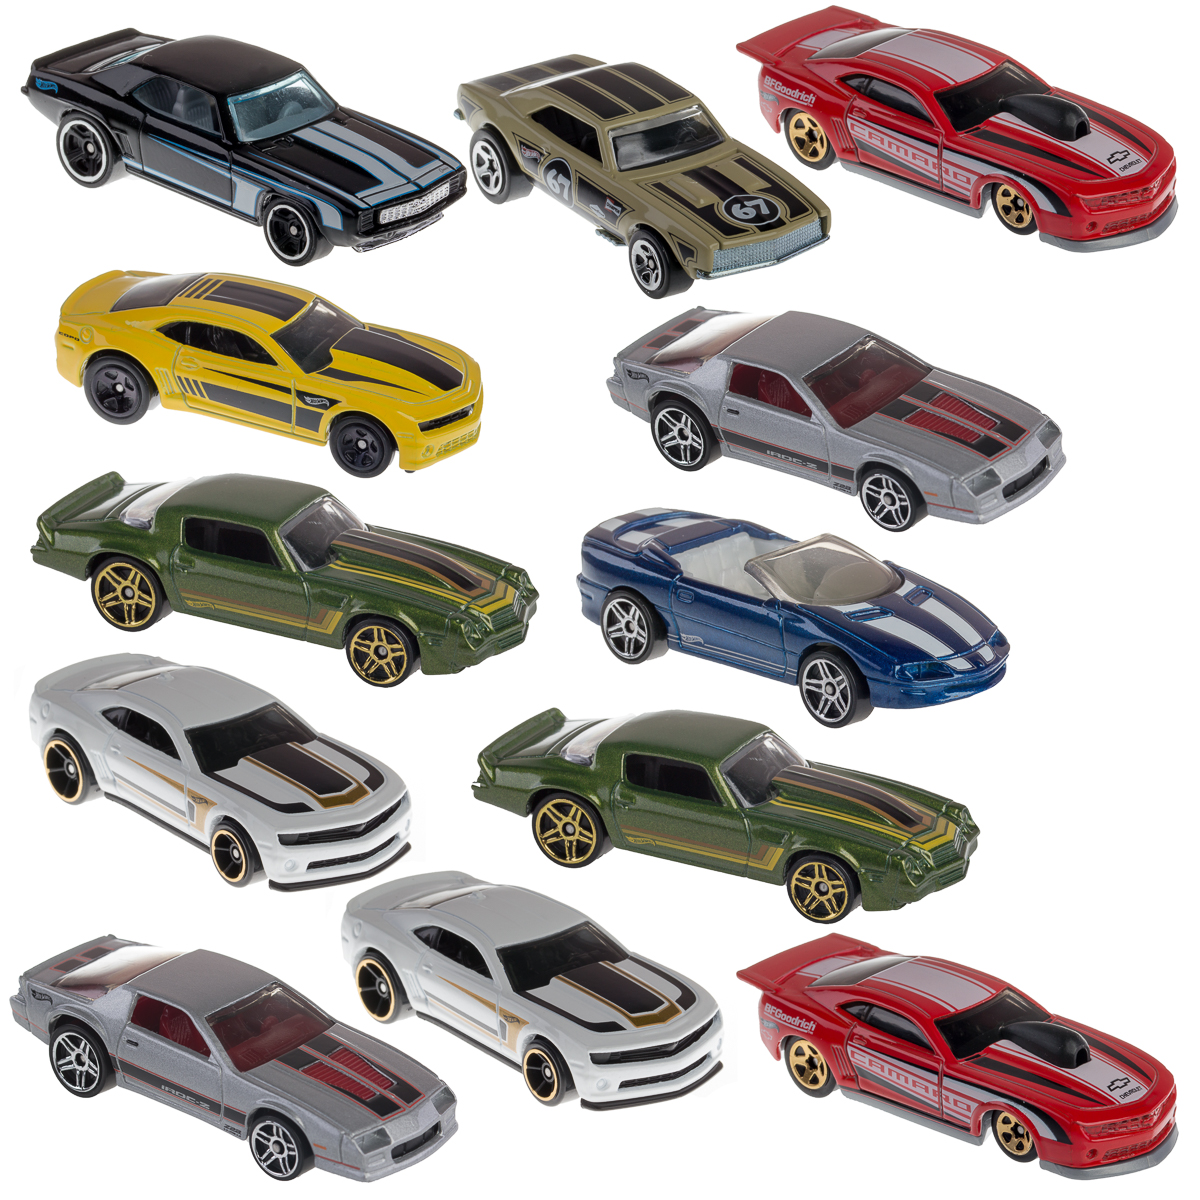 Hot Wheels (12 Pack) Chevy Camaro Diecast Car 1/64 Model Toys 50th Anniversary 1967-2013 Random Bulk